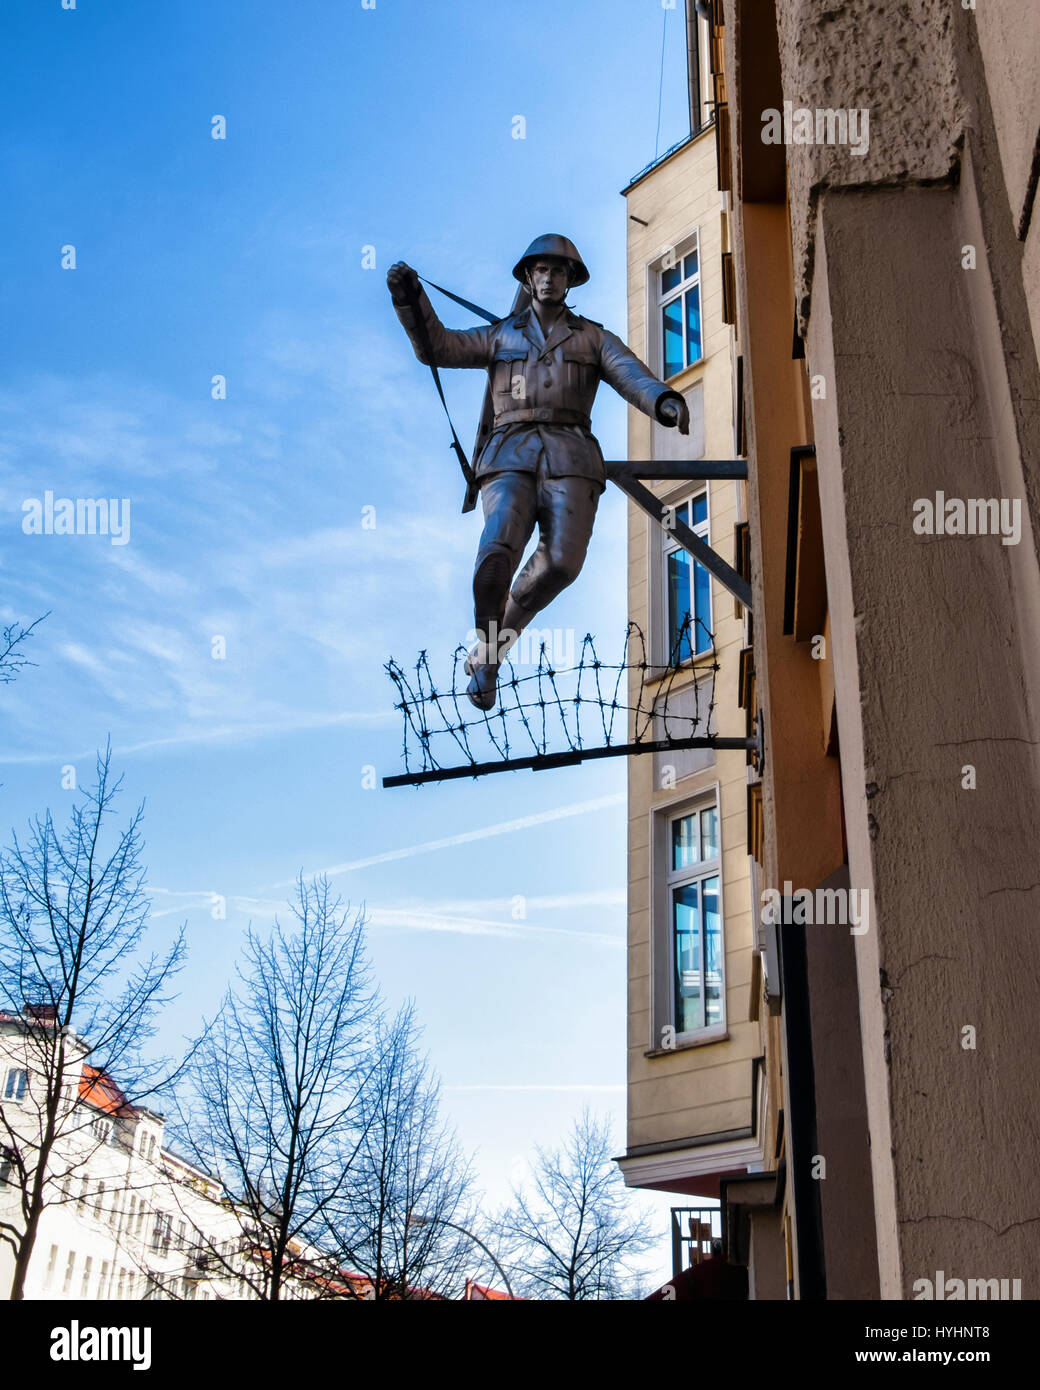 berlin mitte wall jumper jumping soldier sculpture east. Black Bedroom Furniture Sets. Home Design Ideas